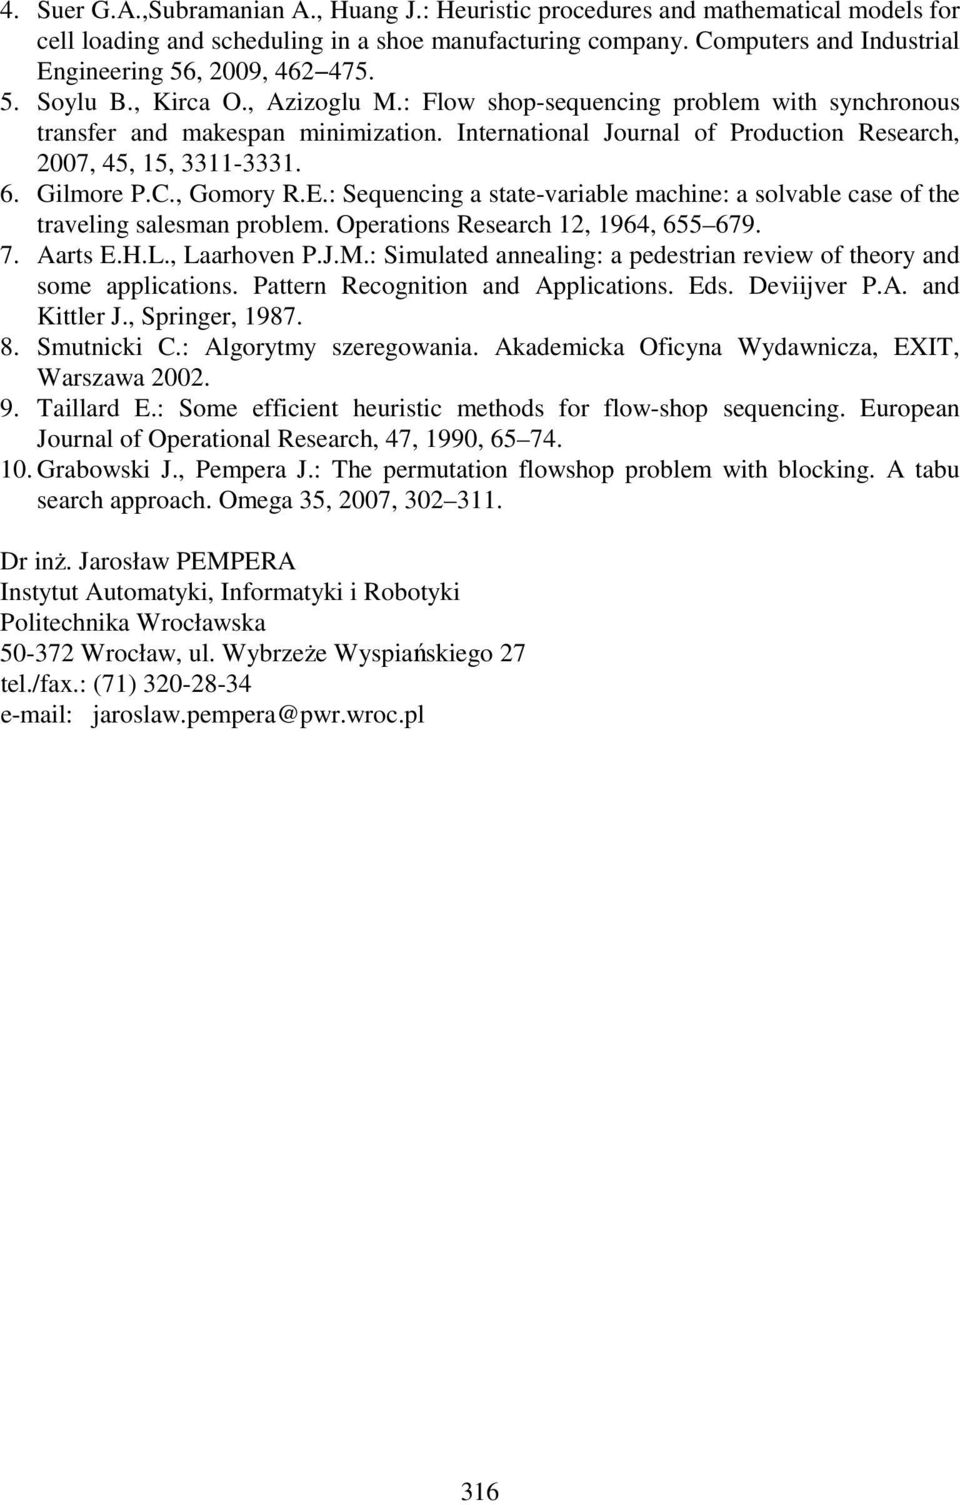 International Journal of Production Research, 2007, 45, 5, 33-333. 6. Gilmore P.C., Gomory R.E.: Sequencing a state-variable machine: a solvable case of the traveling salesman problem.